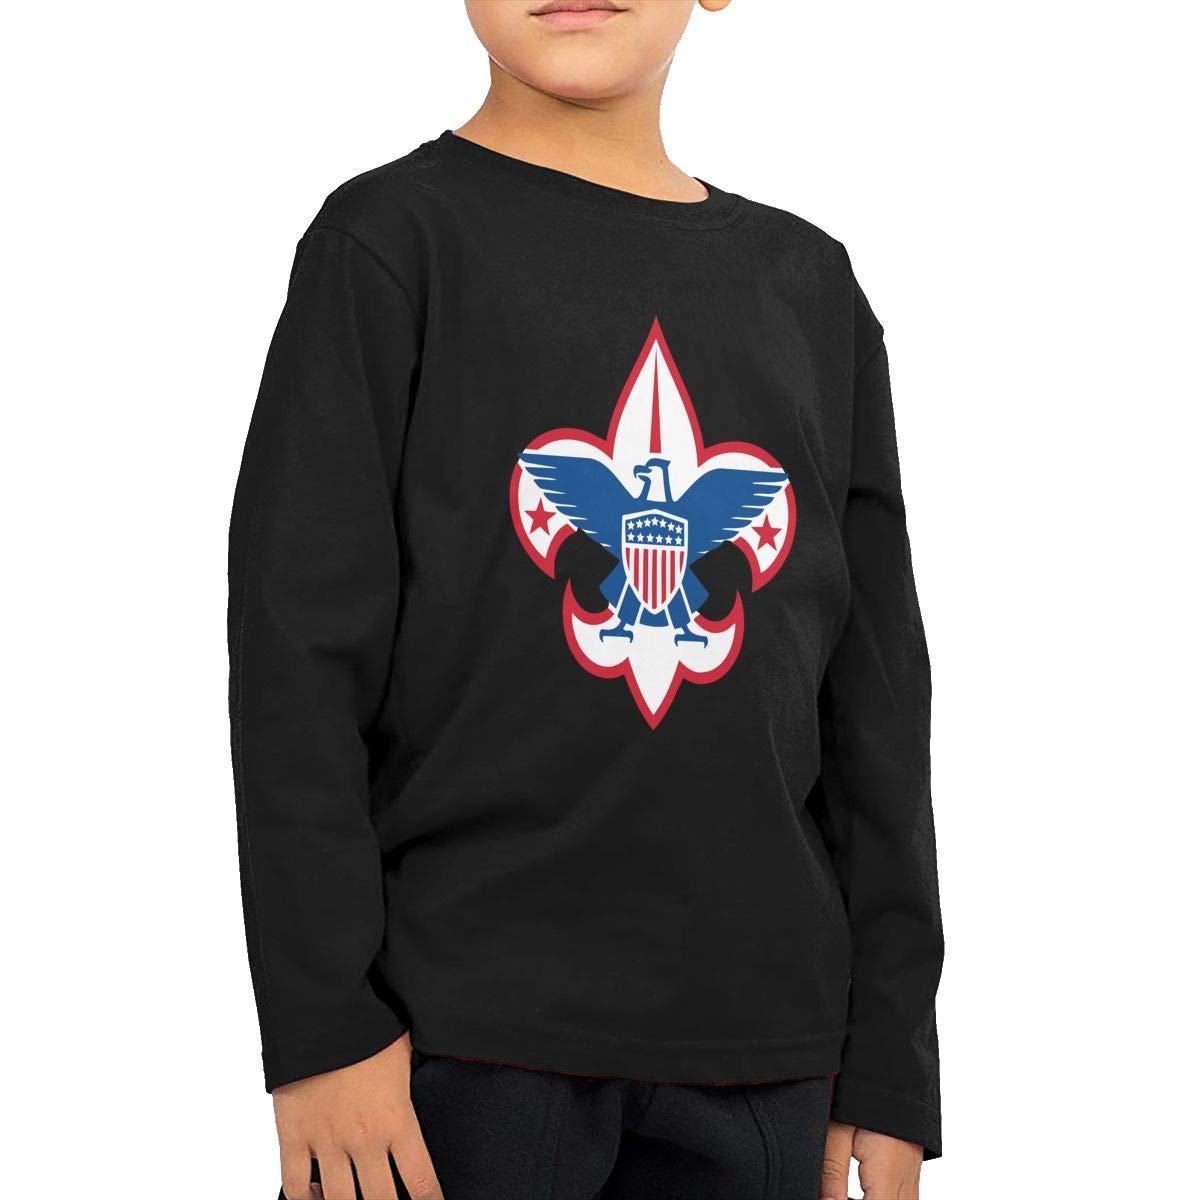 Boy Scouts of America Corporate Childrens Long Sleeve T-Shirt Boys Girls Cotton Tee Tops